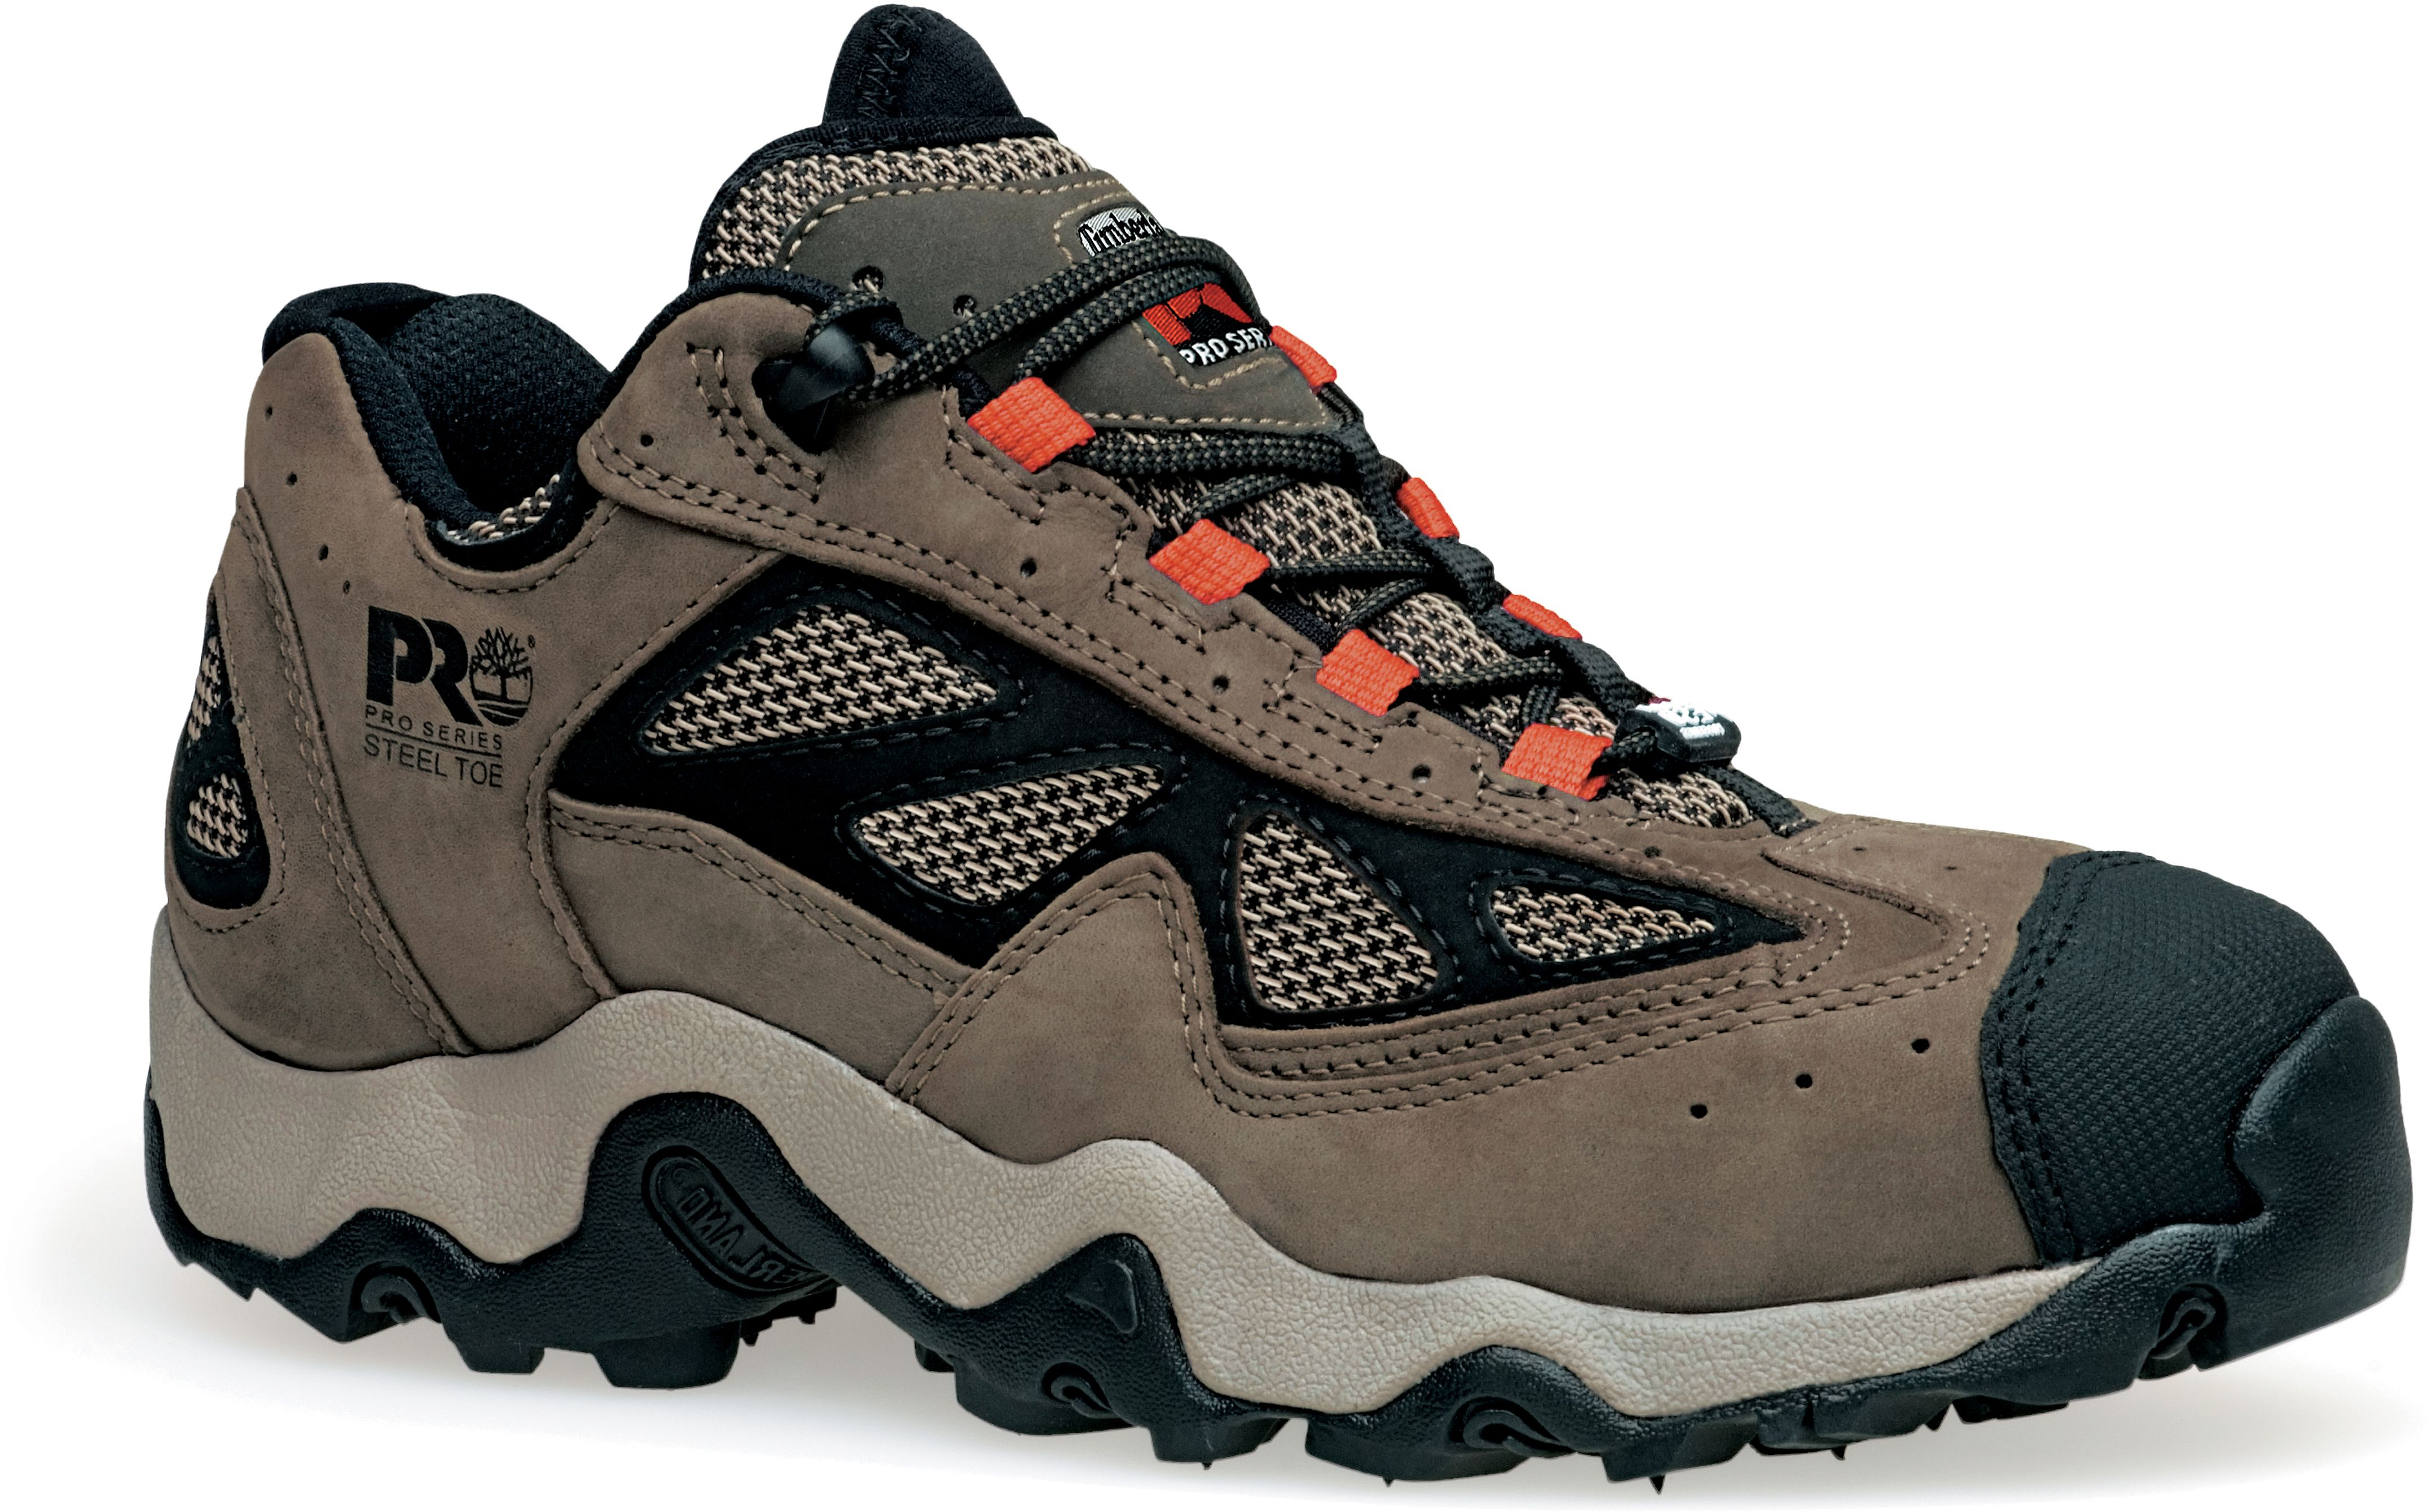 081016214 Timberland PRO Men's Safety Shoes Brown